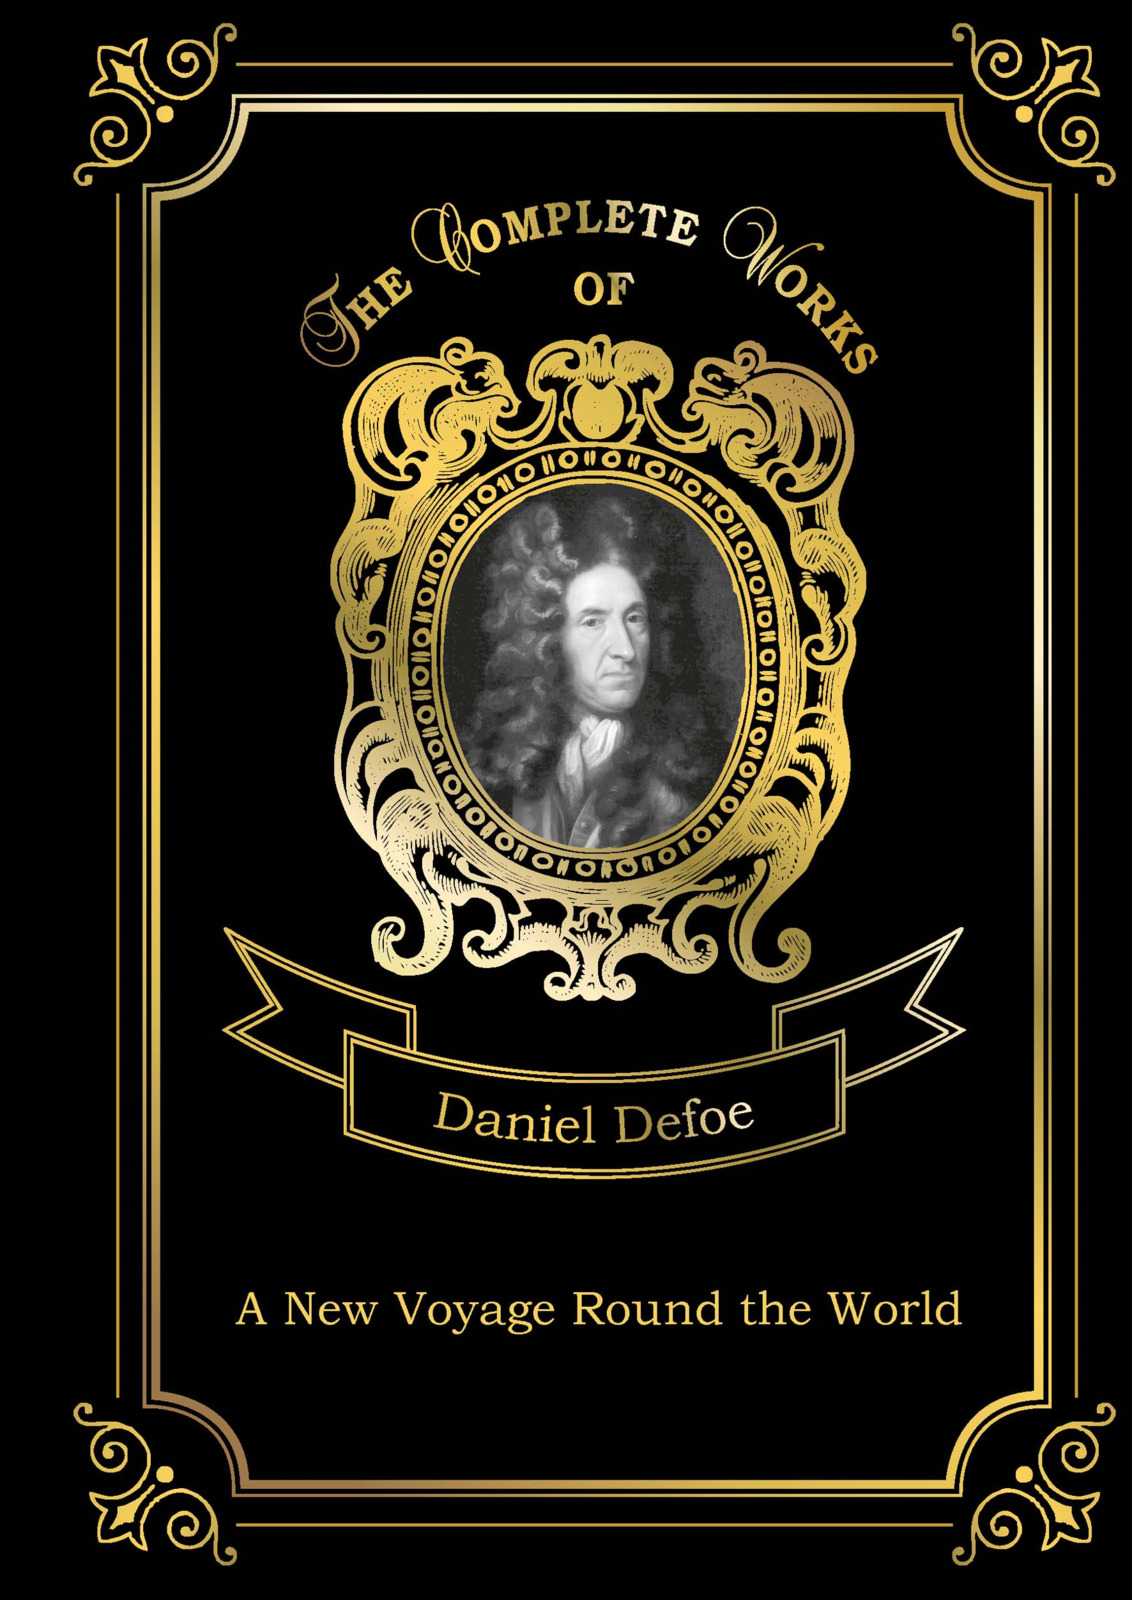 D. Defoe A New Voyage Round the World